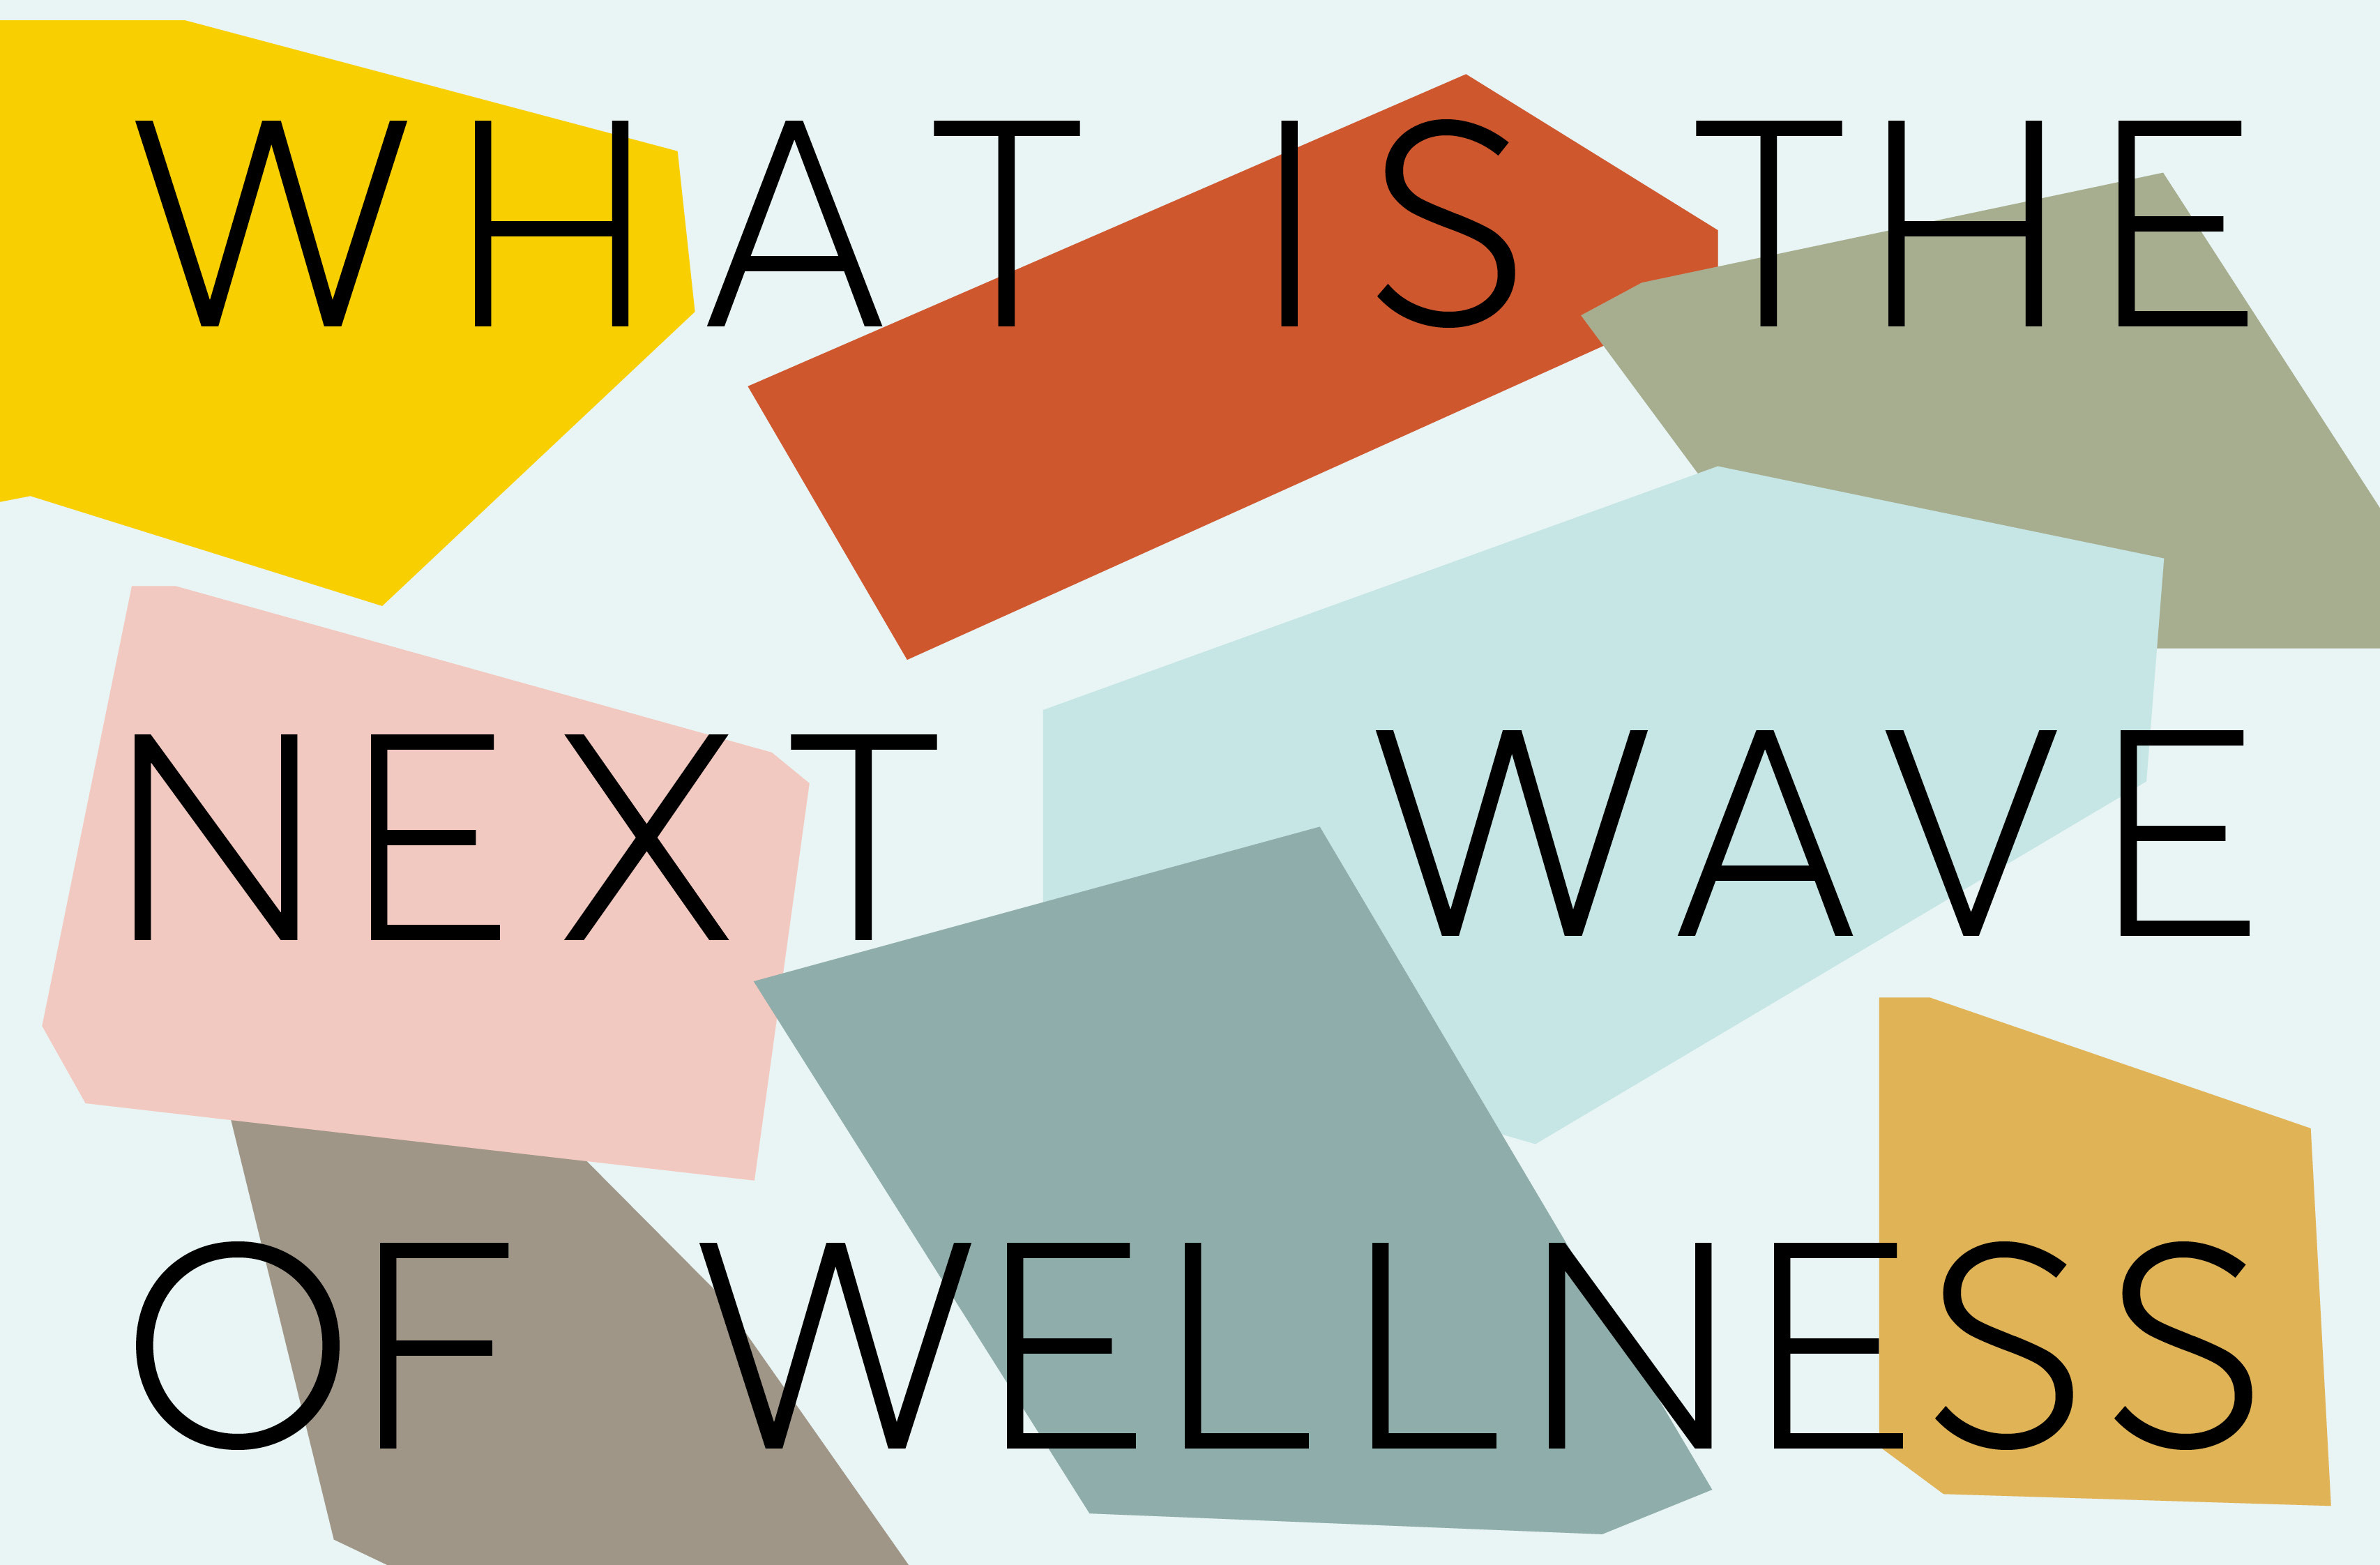 Every Brand Is a Wellness Brand Now: TBWA's Backslash Reveals the Cultural Shifts Defining the Next Wave of Wellness